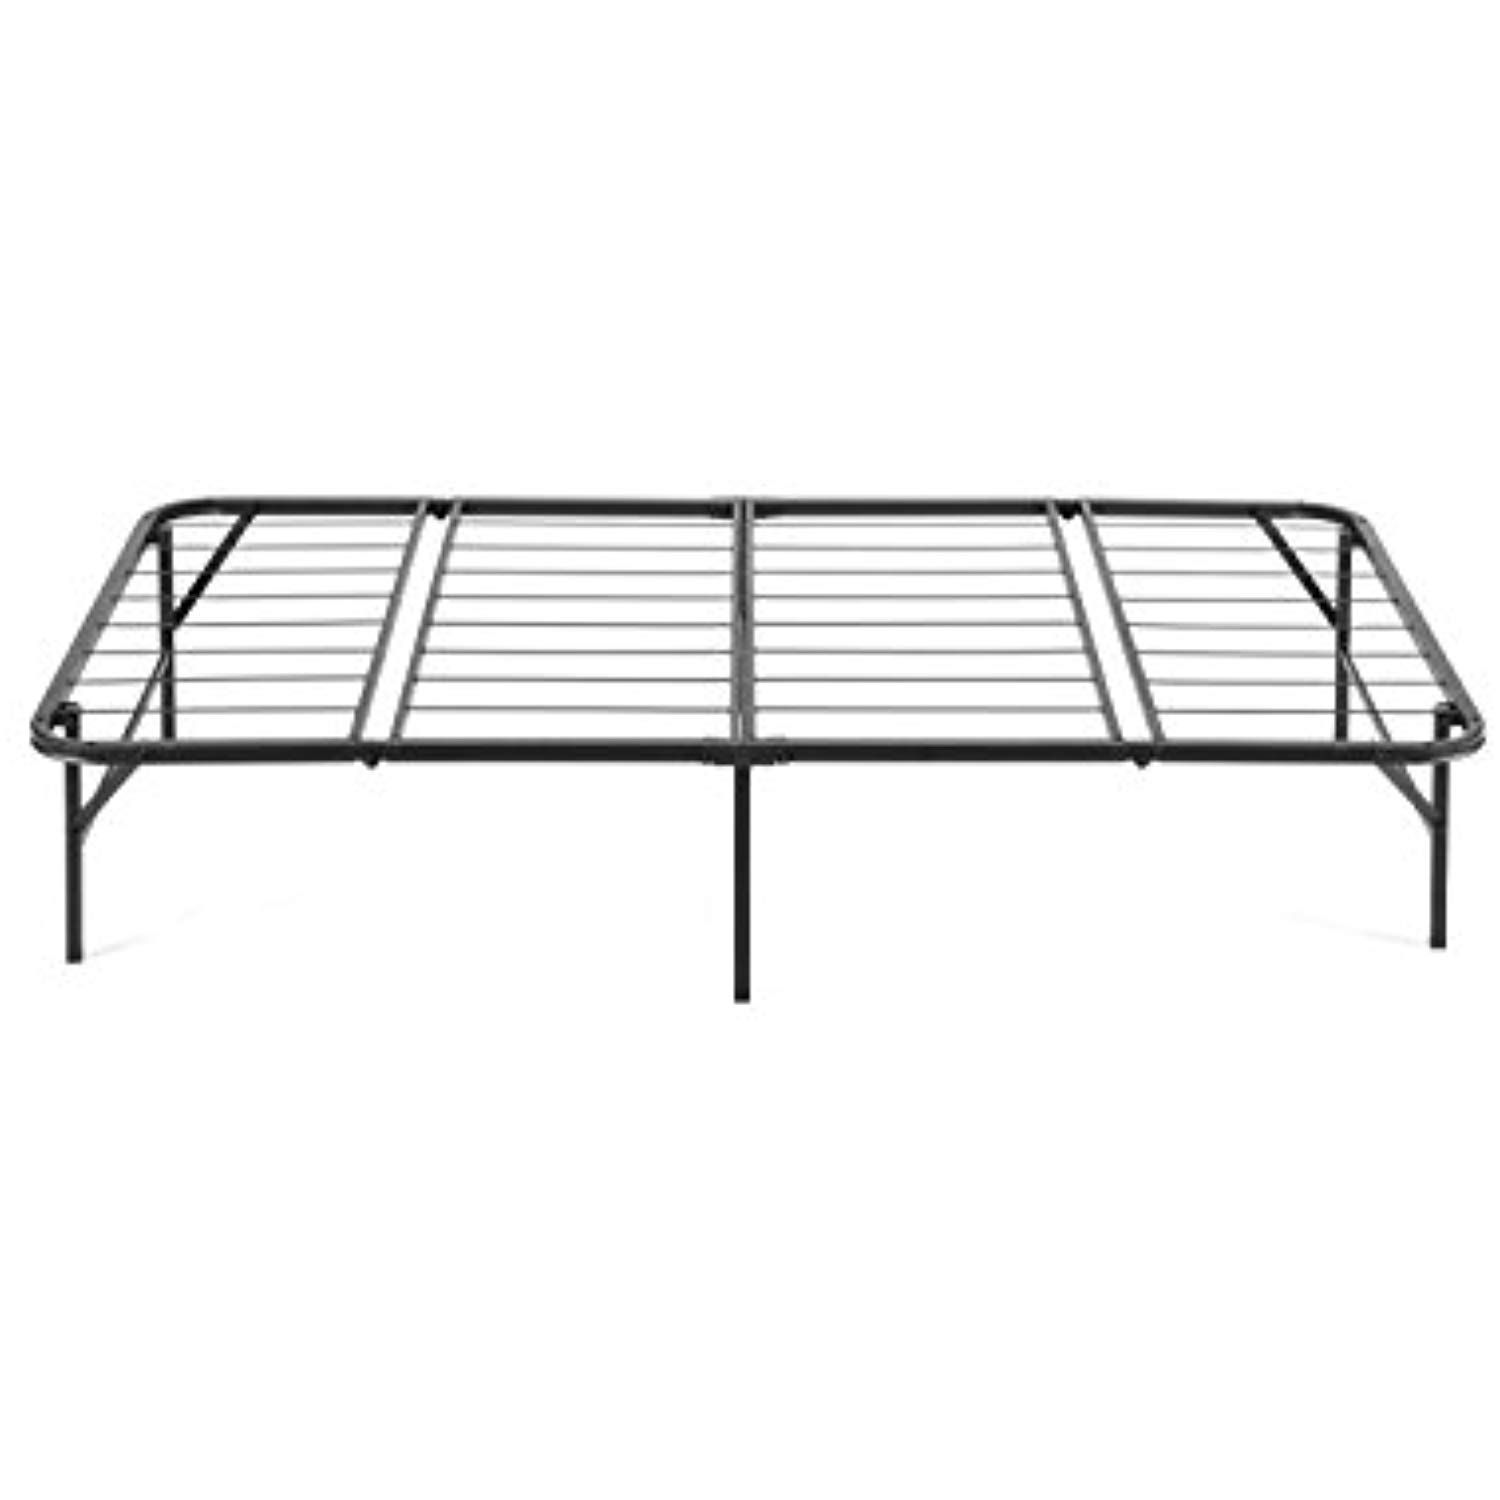 Pragmabed Simple Base Quad Fold Foundation Twin Xl Learn More By Visiting The Image Link This Is An Af Metal Bed Frame Folding Bed Frame Steel Bed Frame